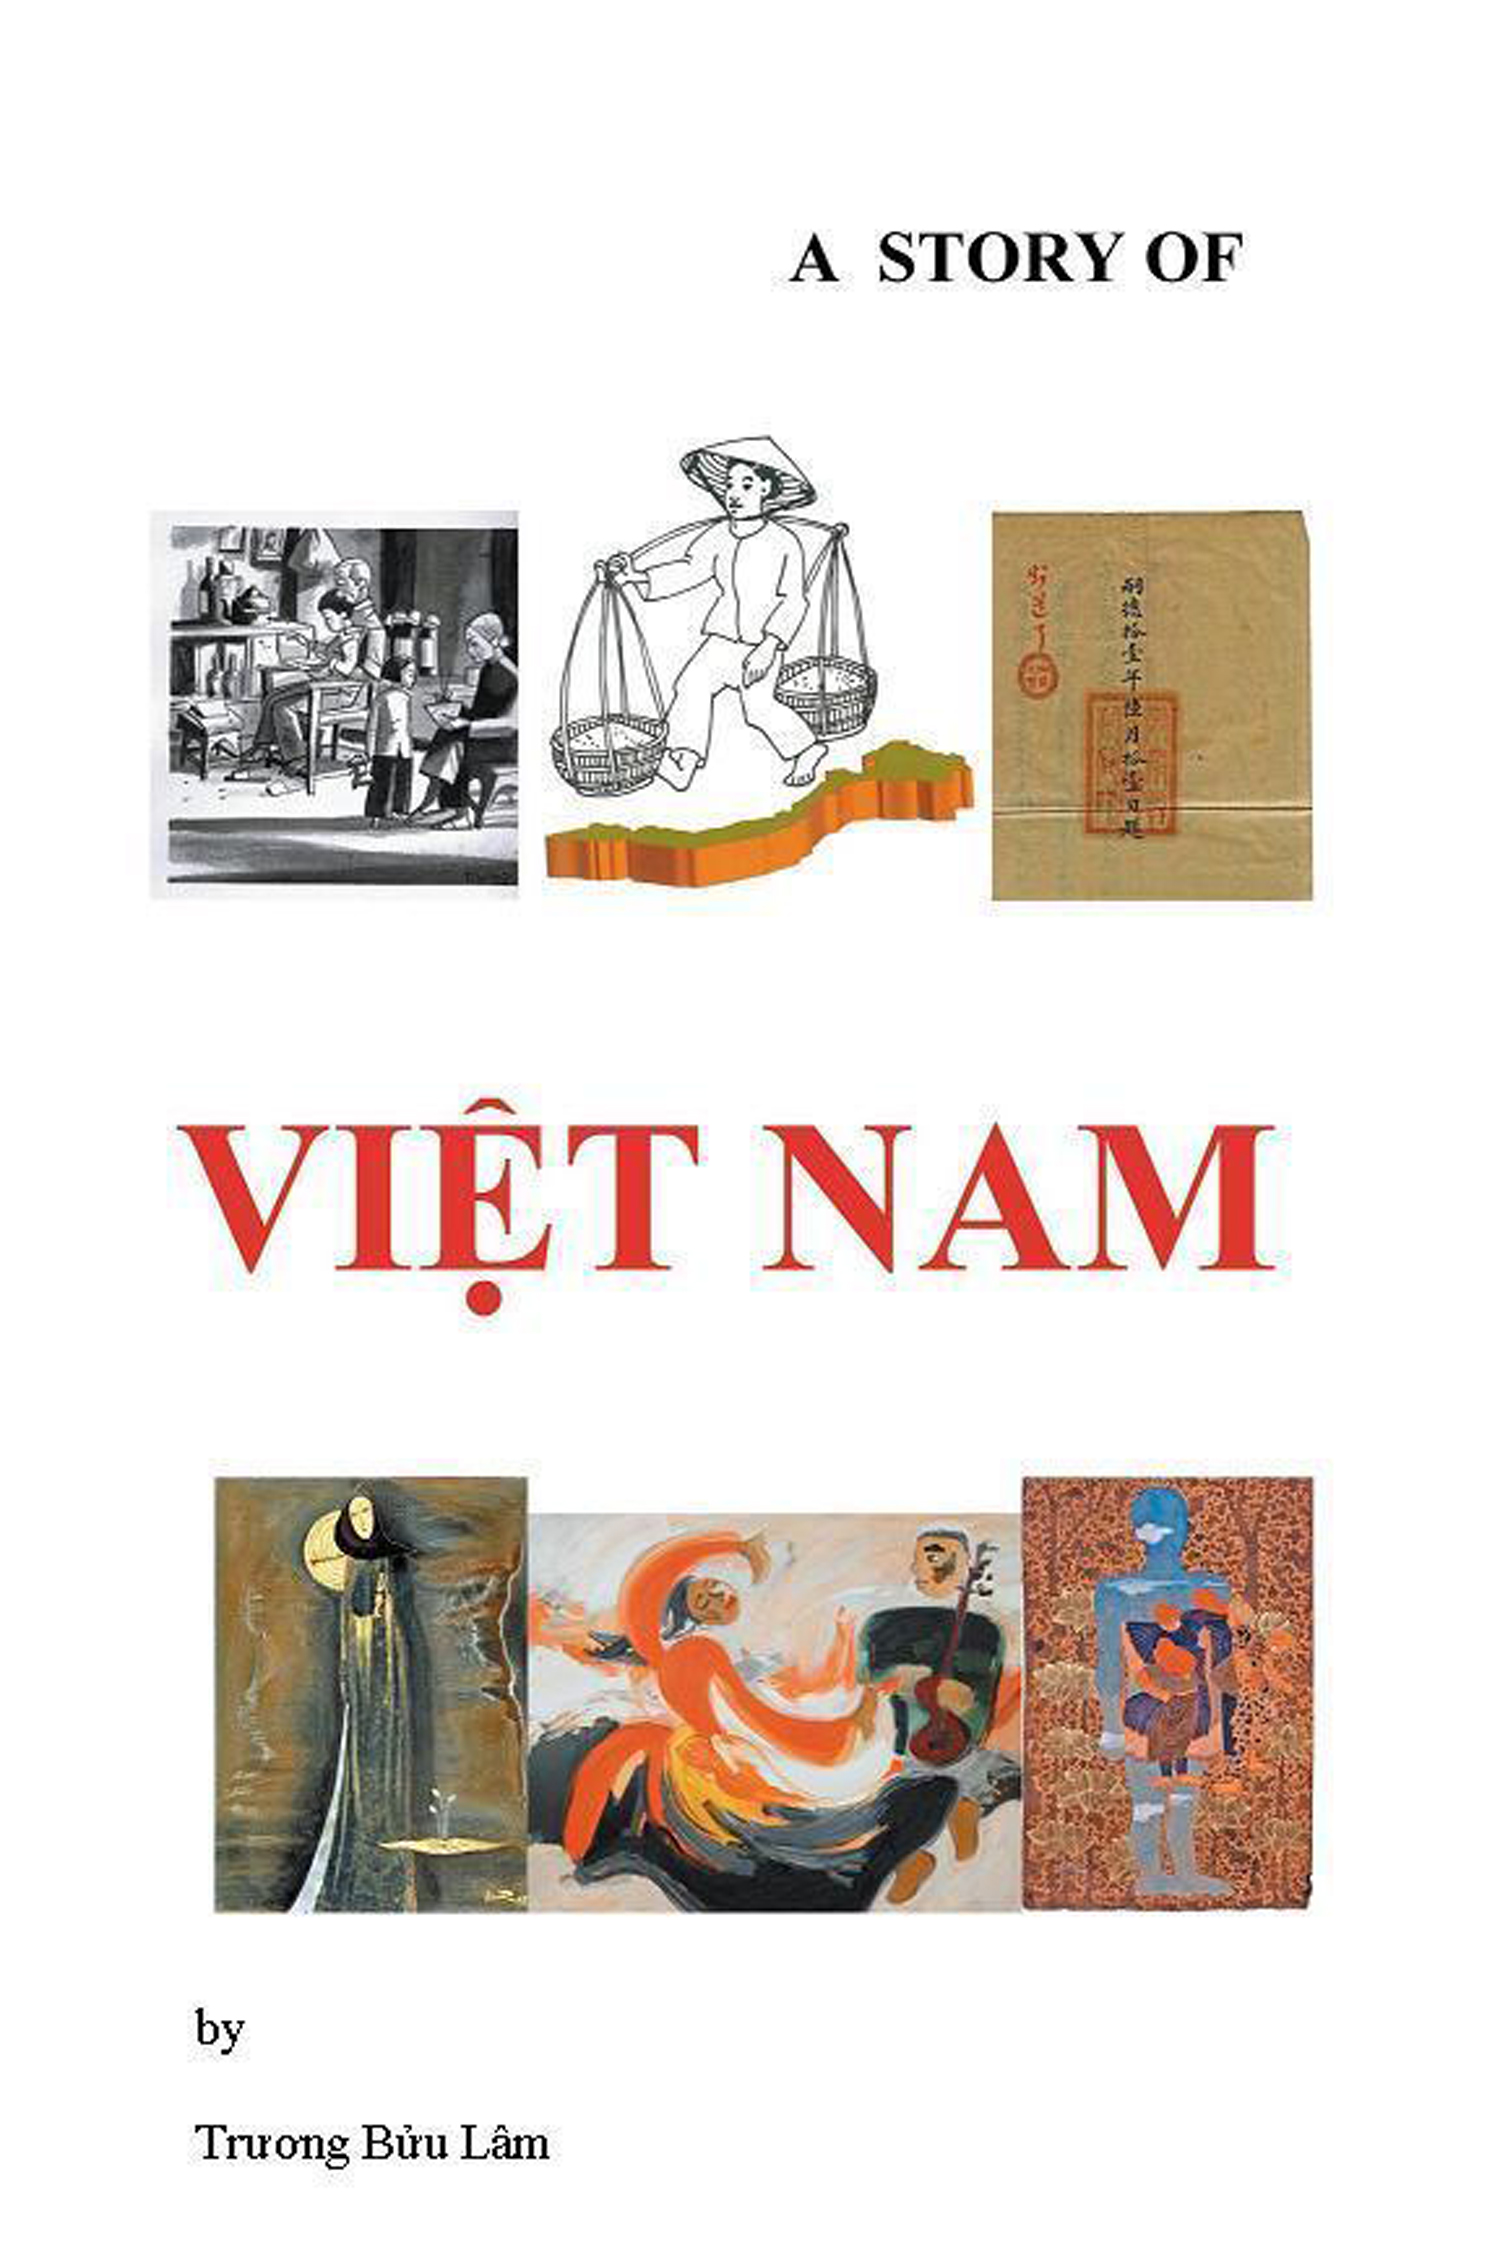 an introduction to the history of vietnam Vietnam war sites of interest a tour of vietnam the war remnants museum in saigon should be a priority stop for anyone interested in the history of the vietnam.